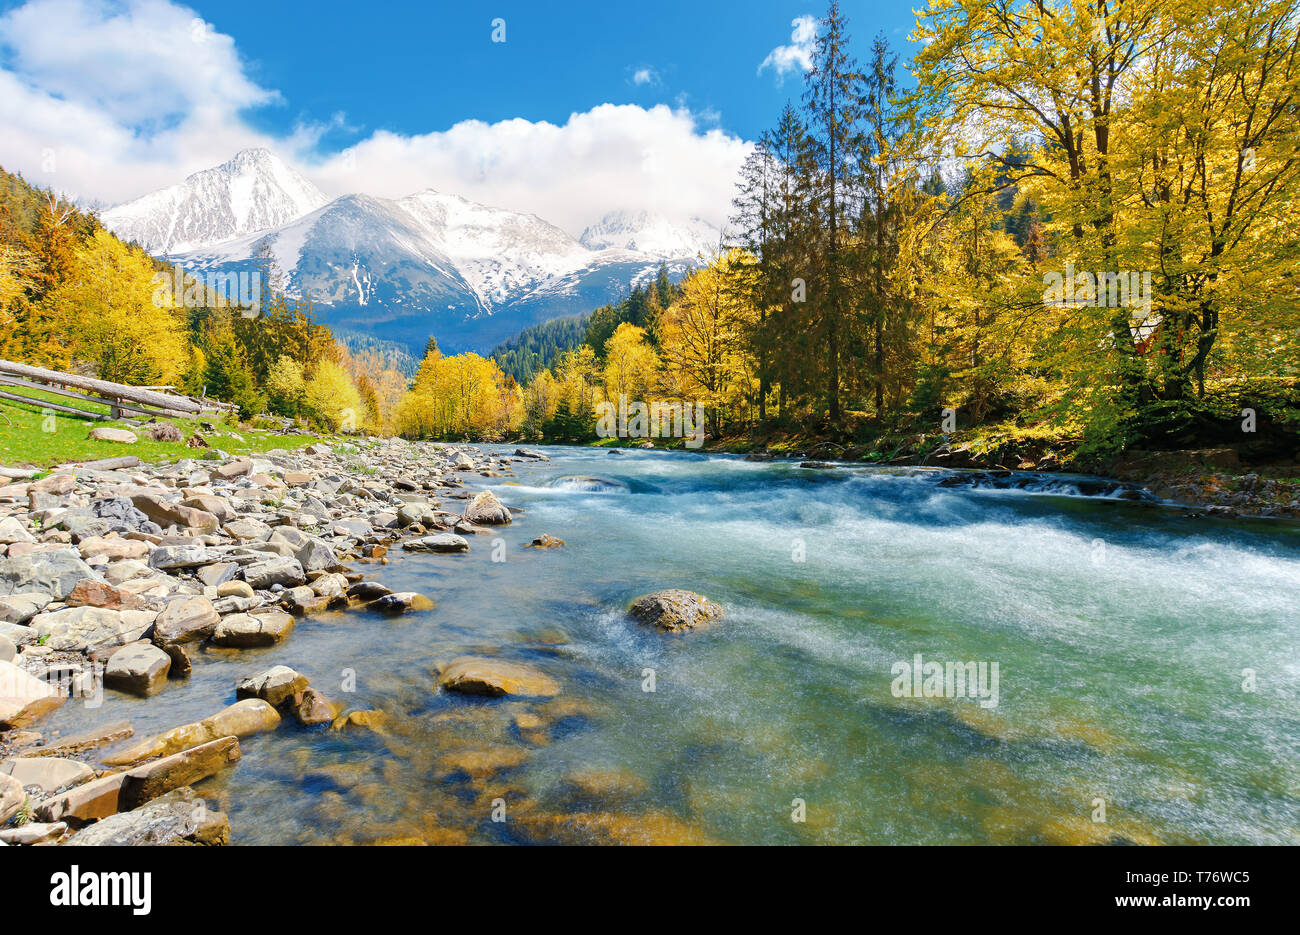 gorgeous day near the forest river in mountains. deciduous tree with vivid yellow foliage among spruce on the curve rocky shore. dreamy composite autu - Stock Image